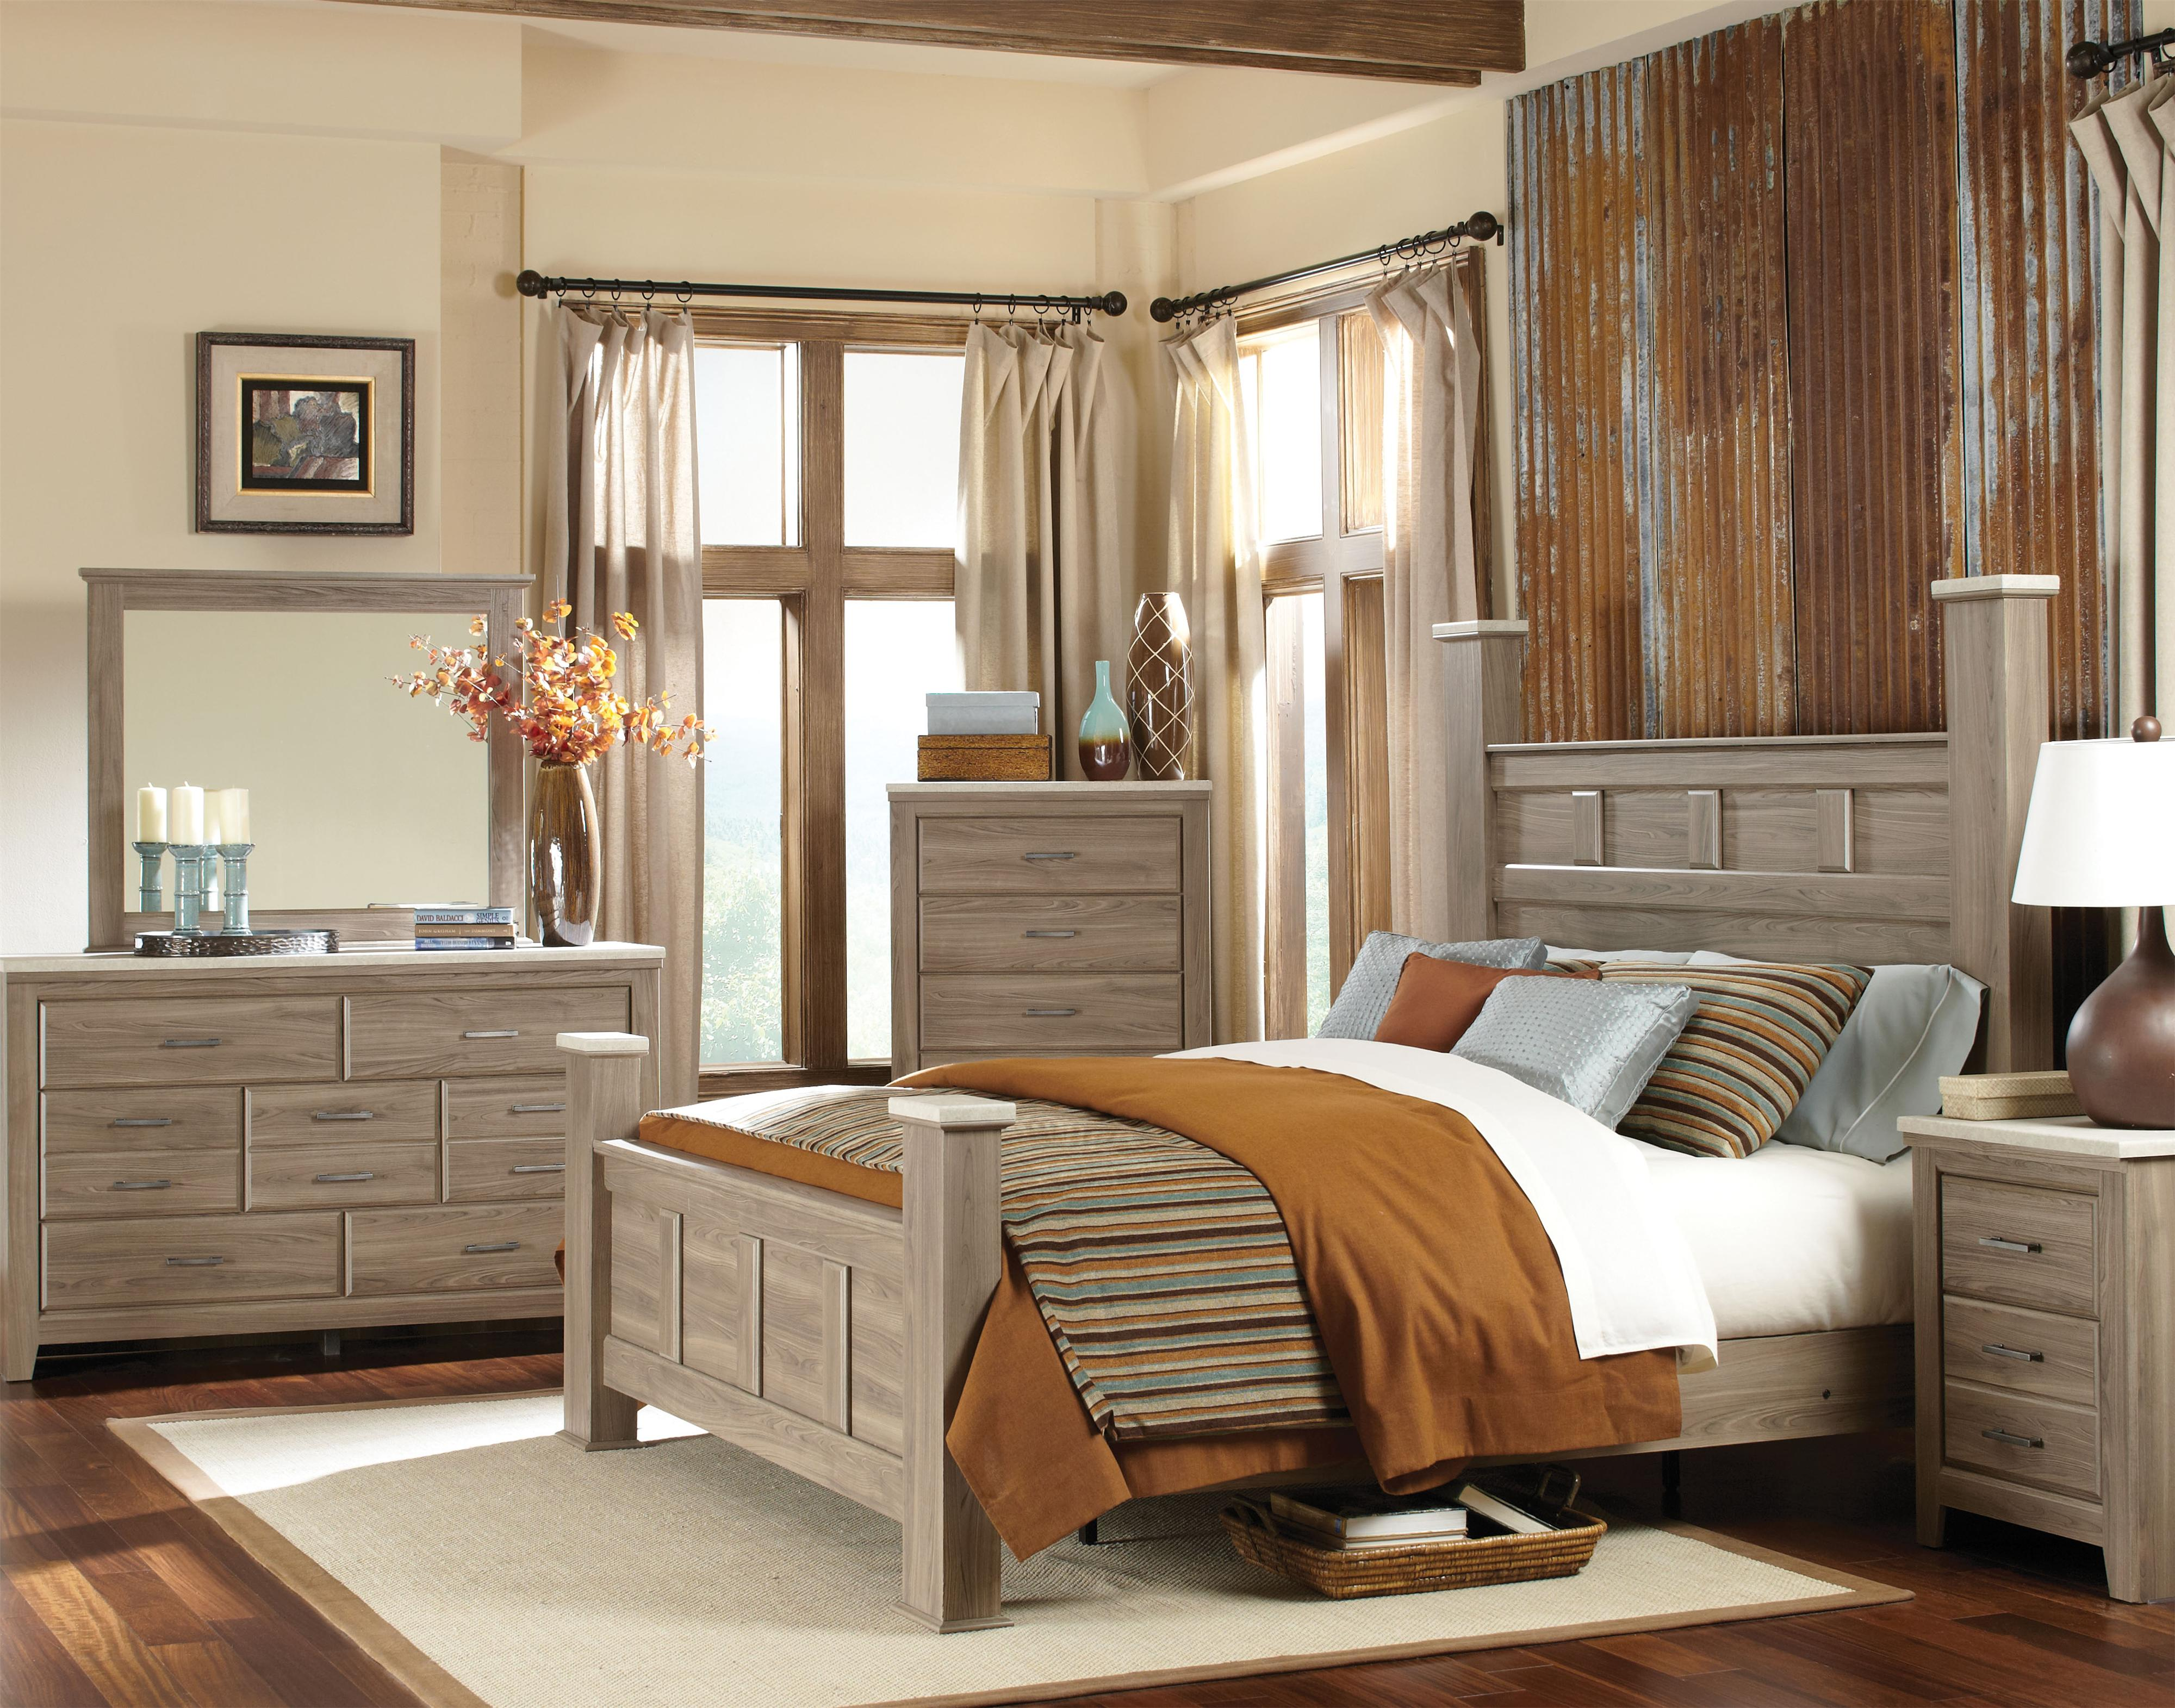 queen poster bedroom set. King Poster Bed Casual by Standard Furniture  Wolf and Gardiner